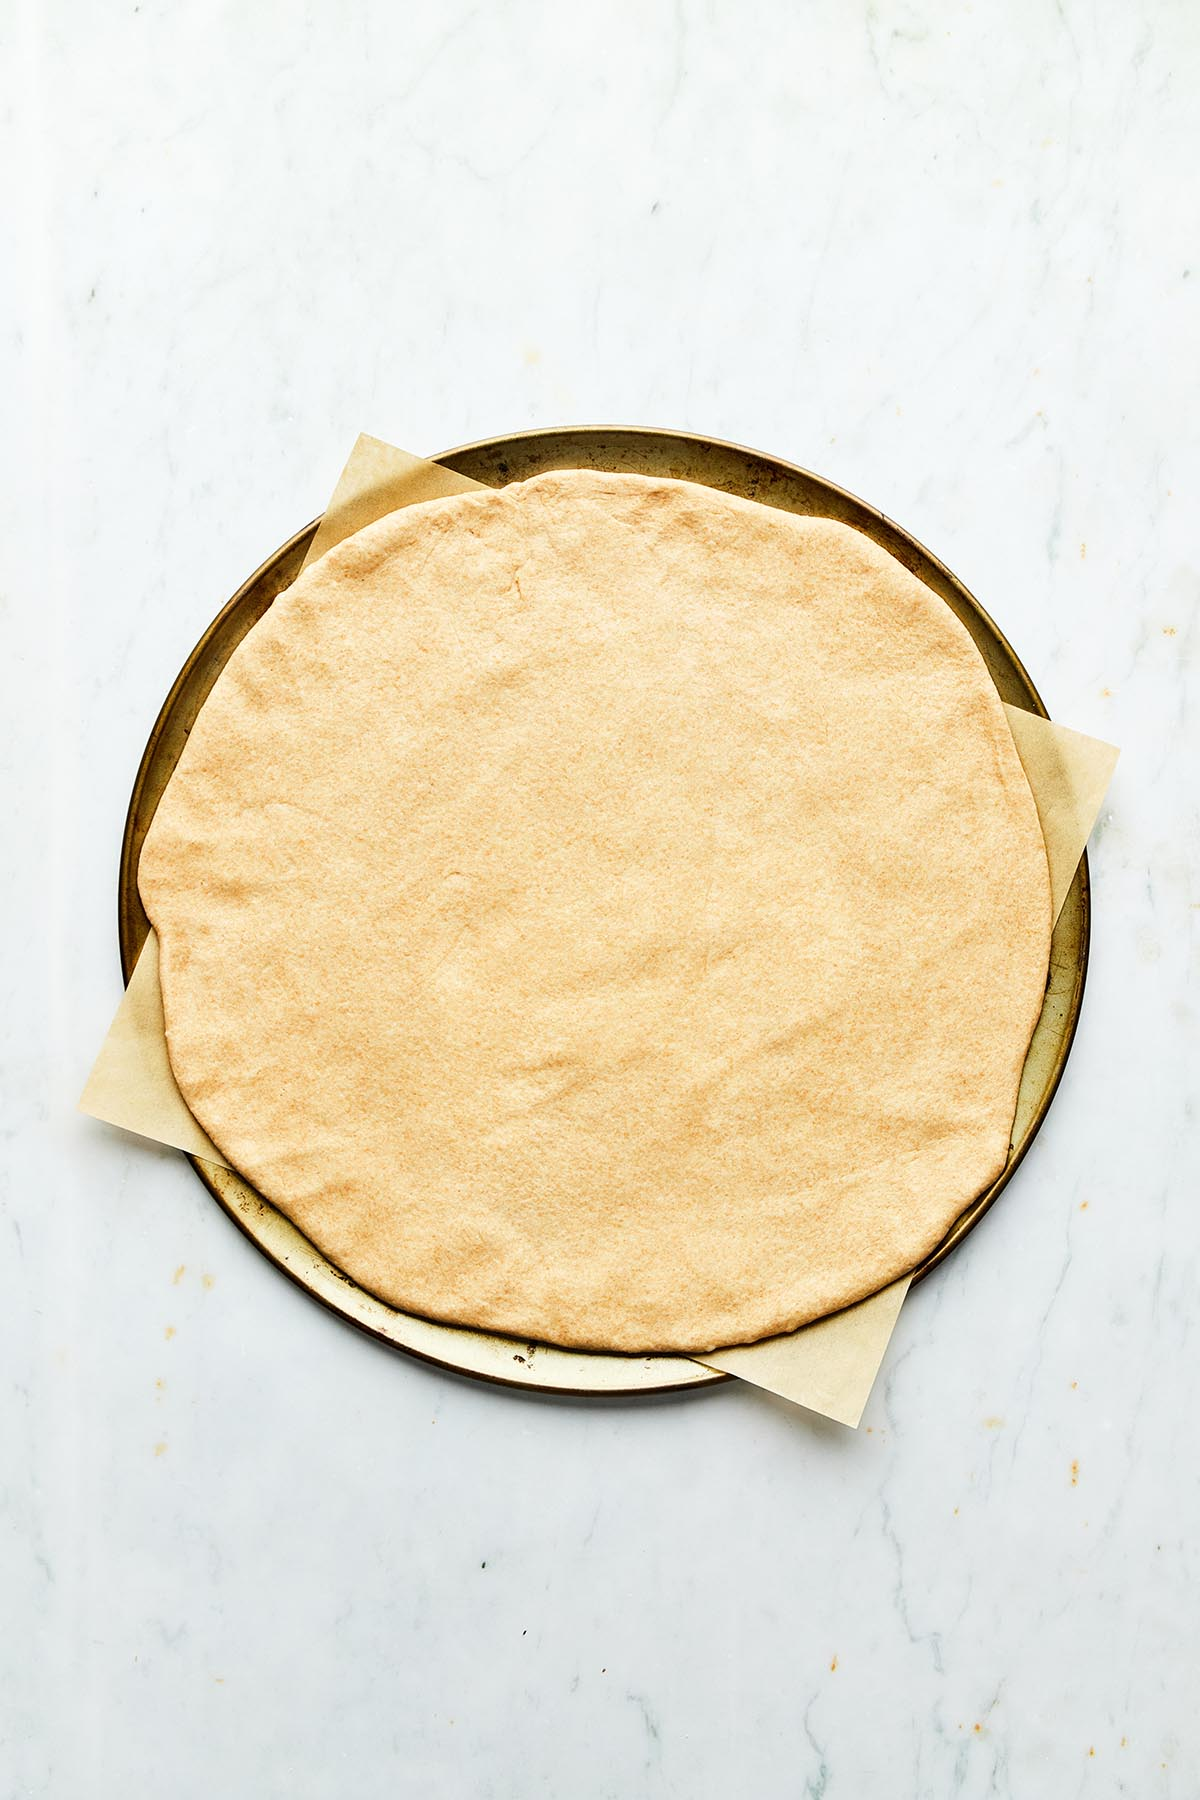 Round rolled out pizza dough on a baking tray lined with parchment.